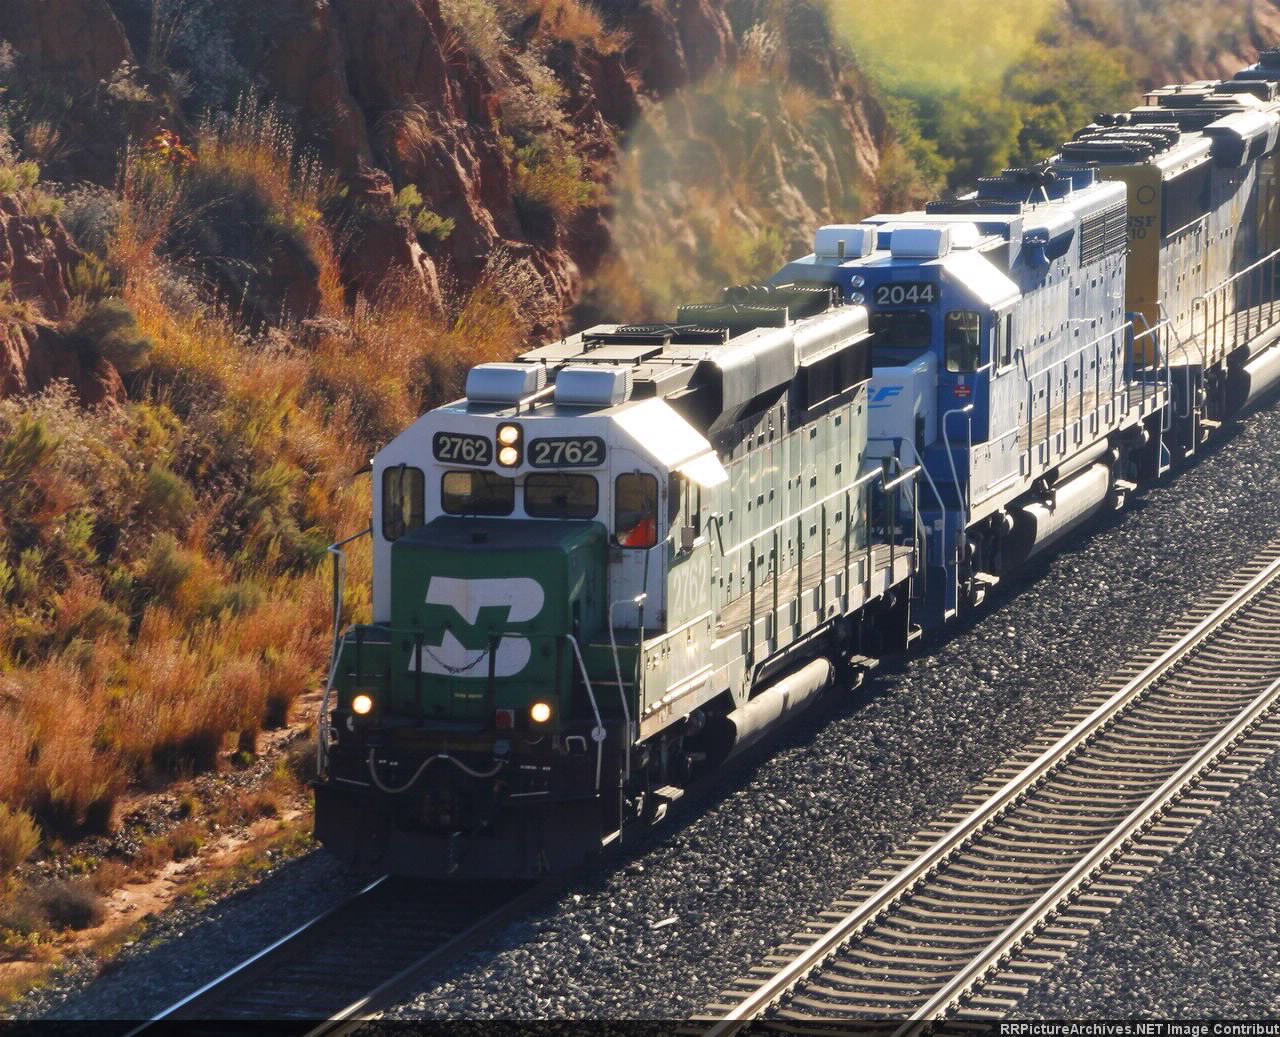 BNSF 2762 followed by BNSF 2044 Smurf engine